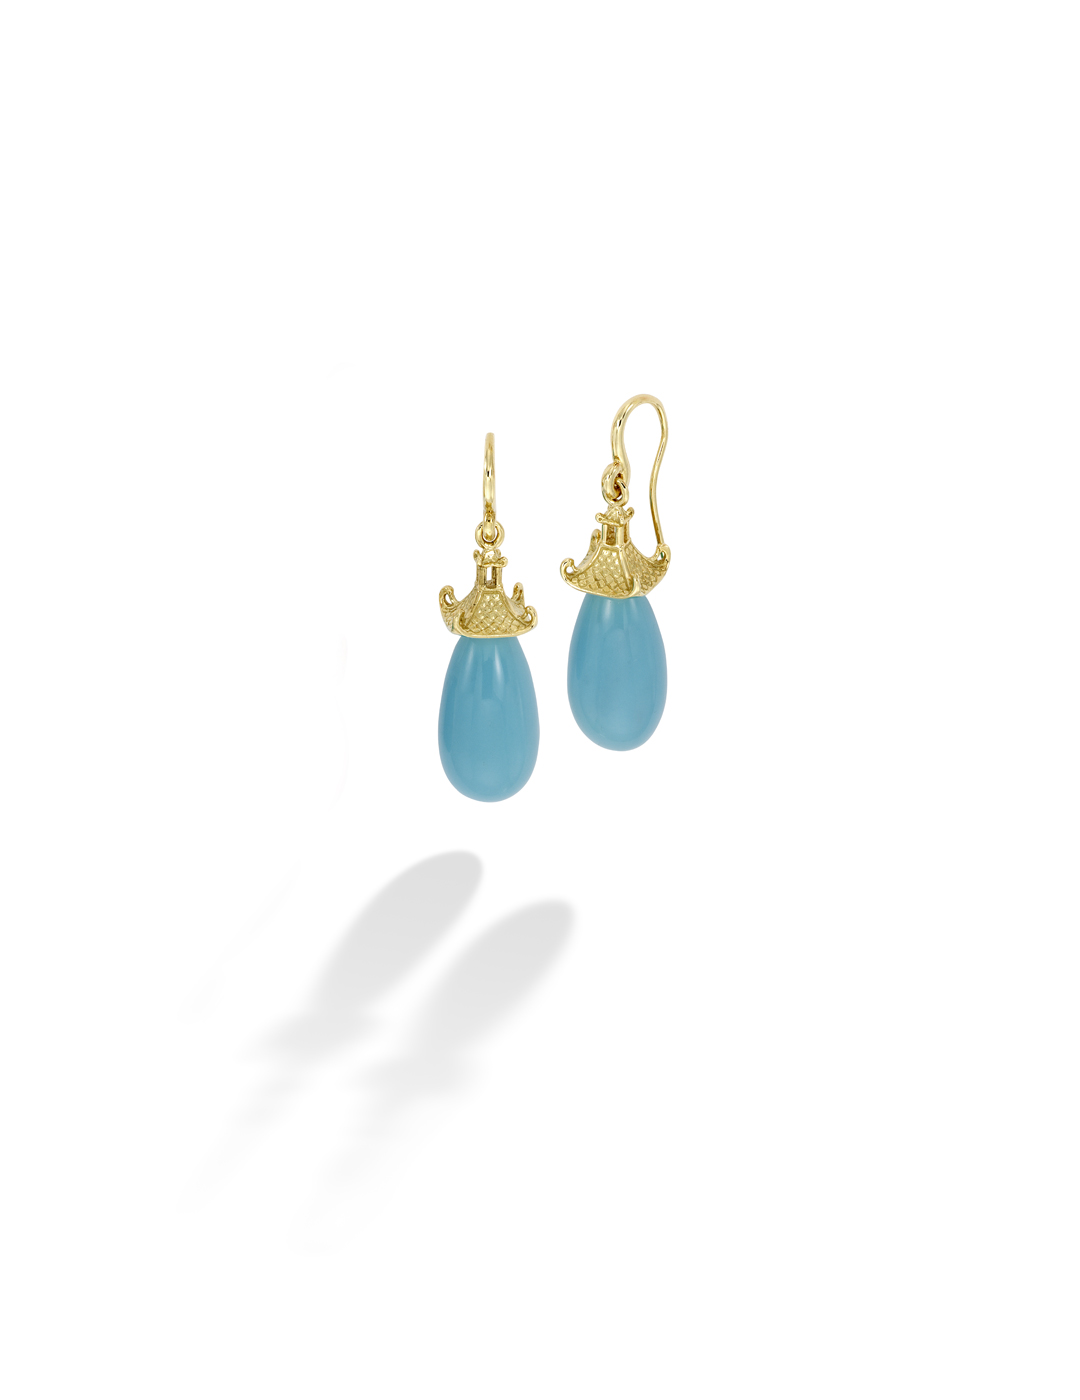 mish_products_earrings_Pagoda-Turq-ER-1